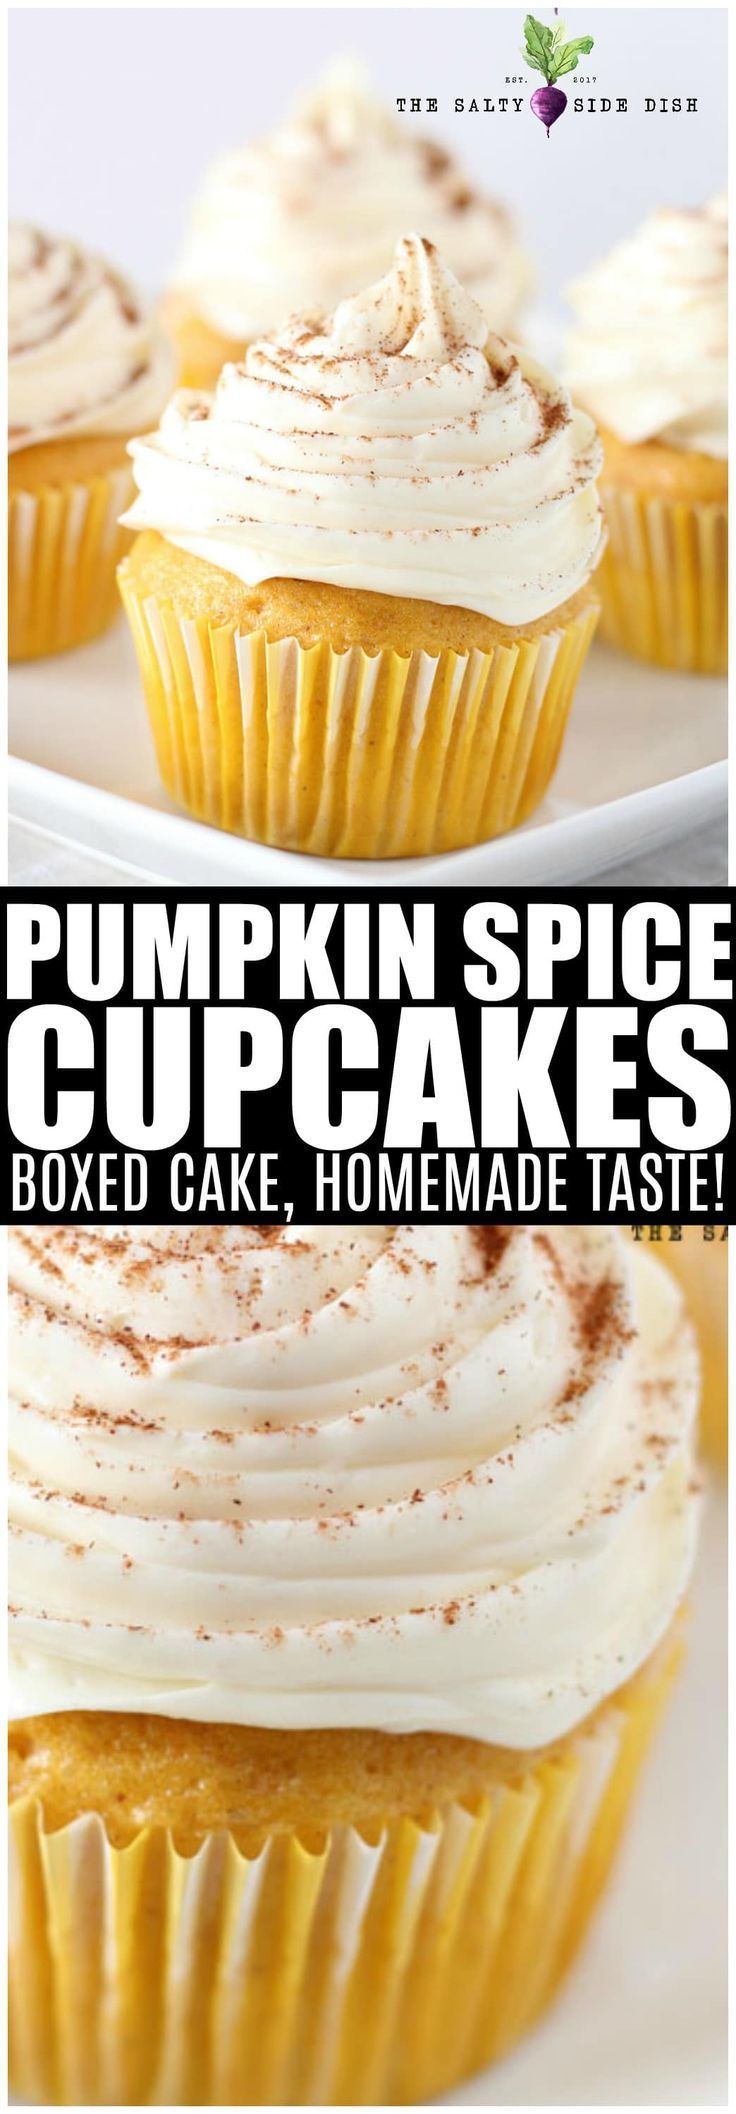 Pumpkin Spice Cupcakes with Vanilla Frosting | Salty Side Dish #pumpkinspicecupcakes